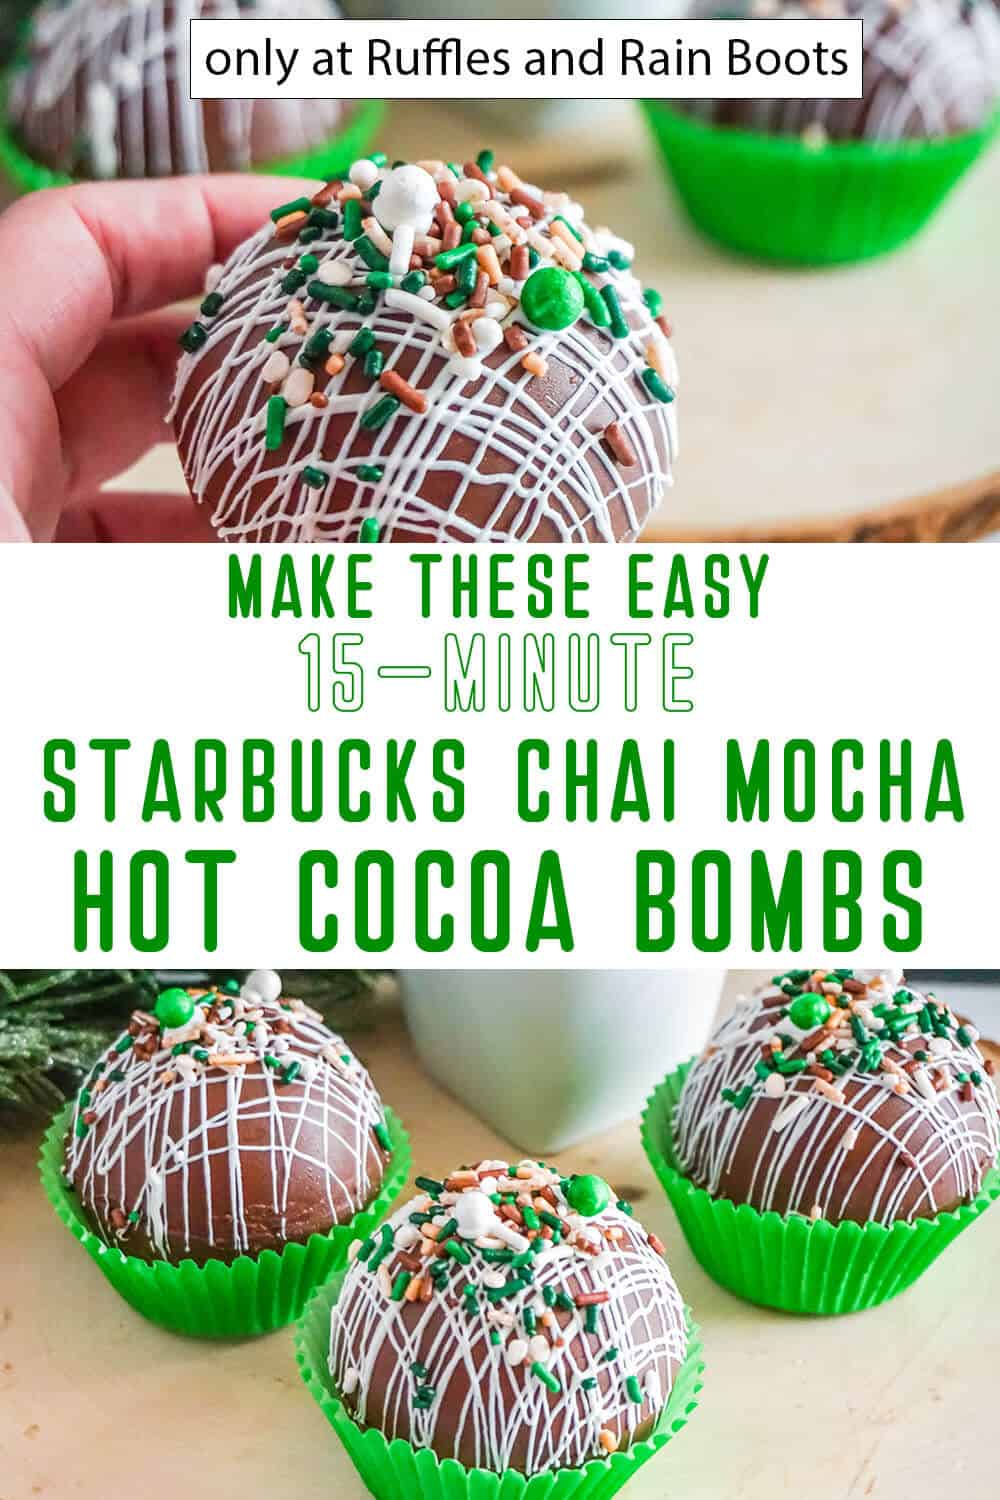 photo collage of tea infused hot cocoa bombs with text which reads make these easy 15-minute starbucks chai mocha hot cocoa bombs